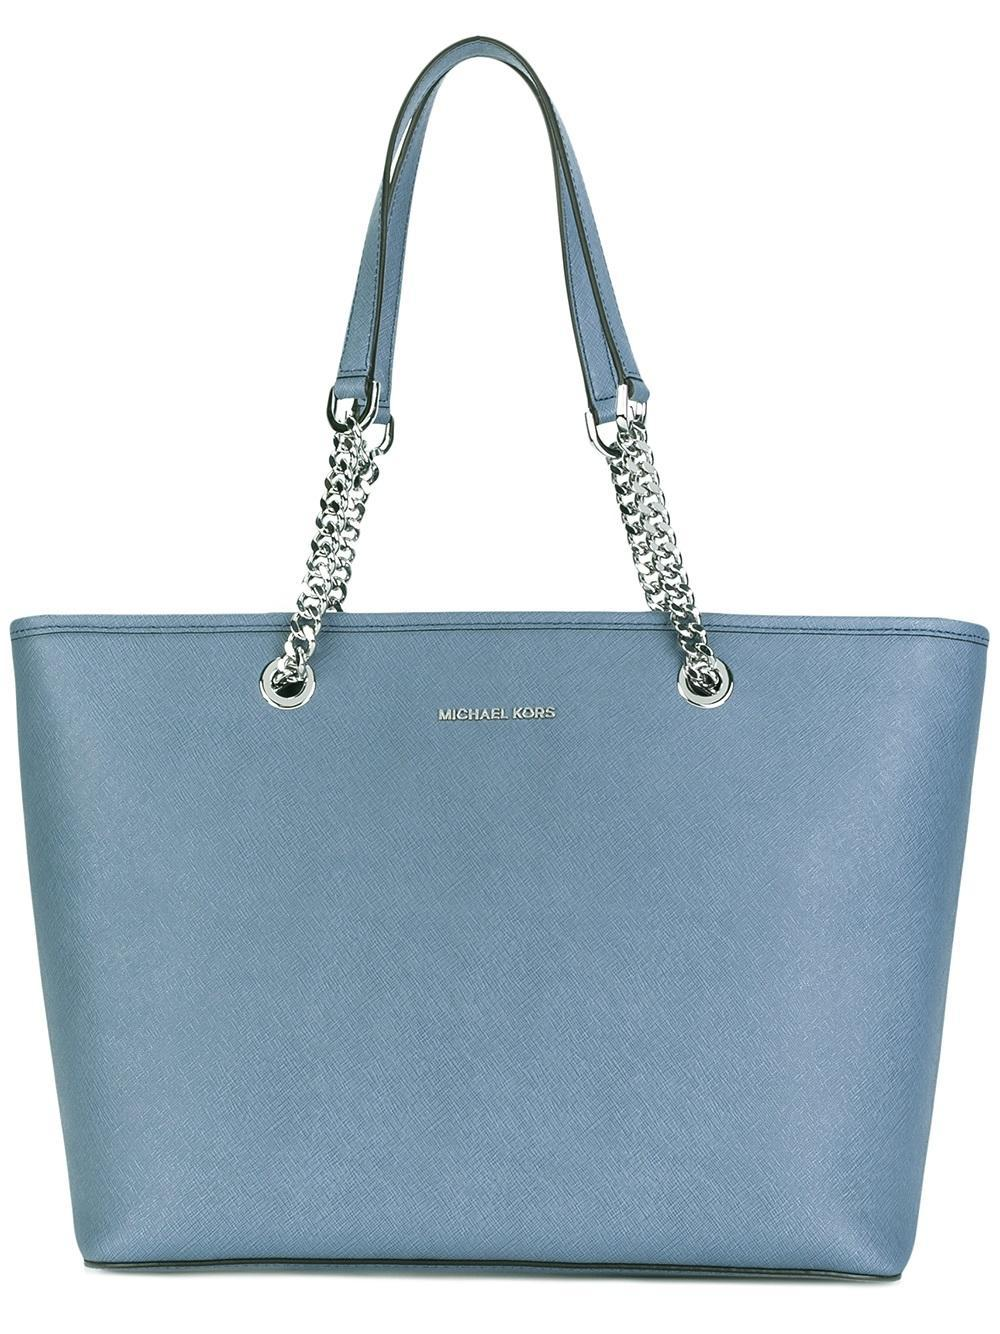 22748f64659acf Michael Kors Tote Bag With Chain Strap | Stanford Center for ...